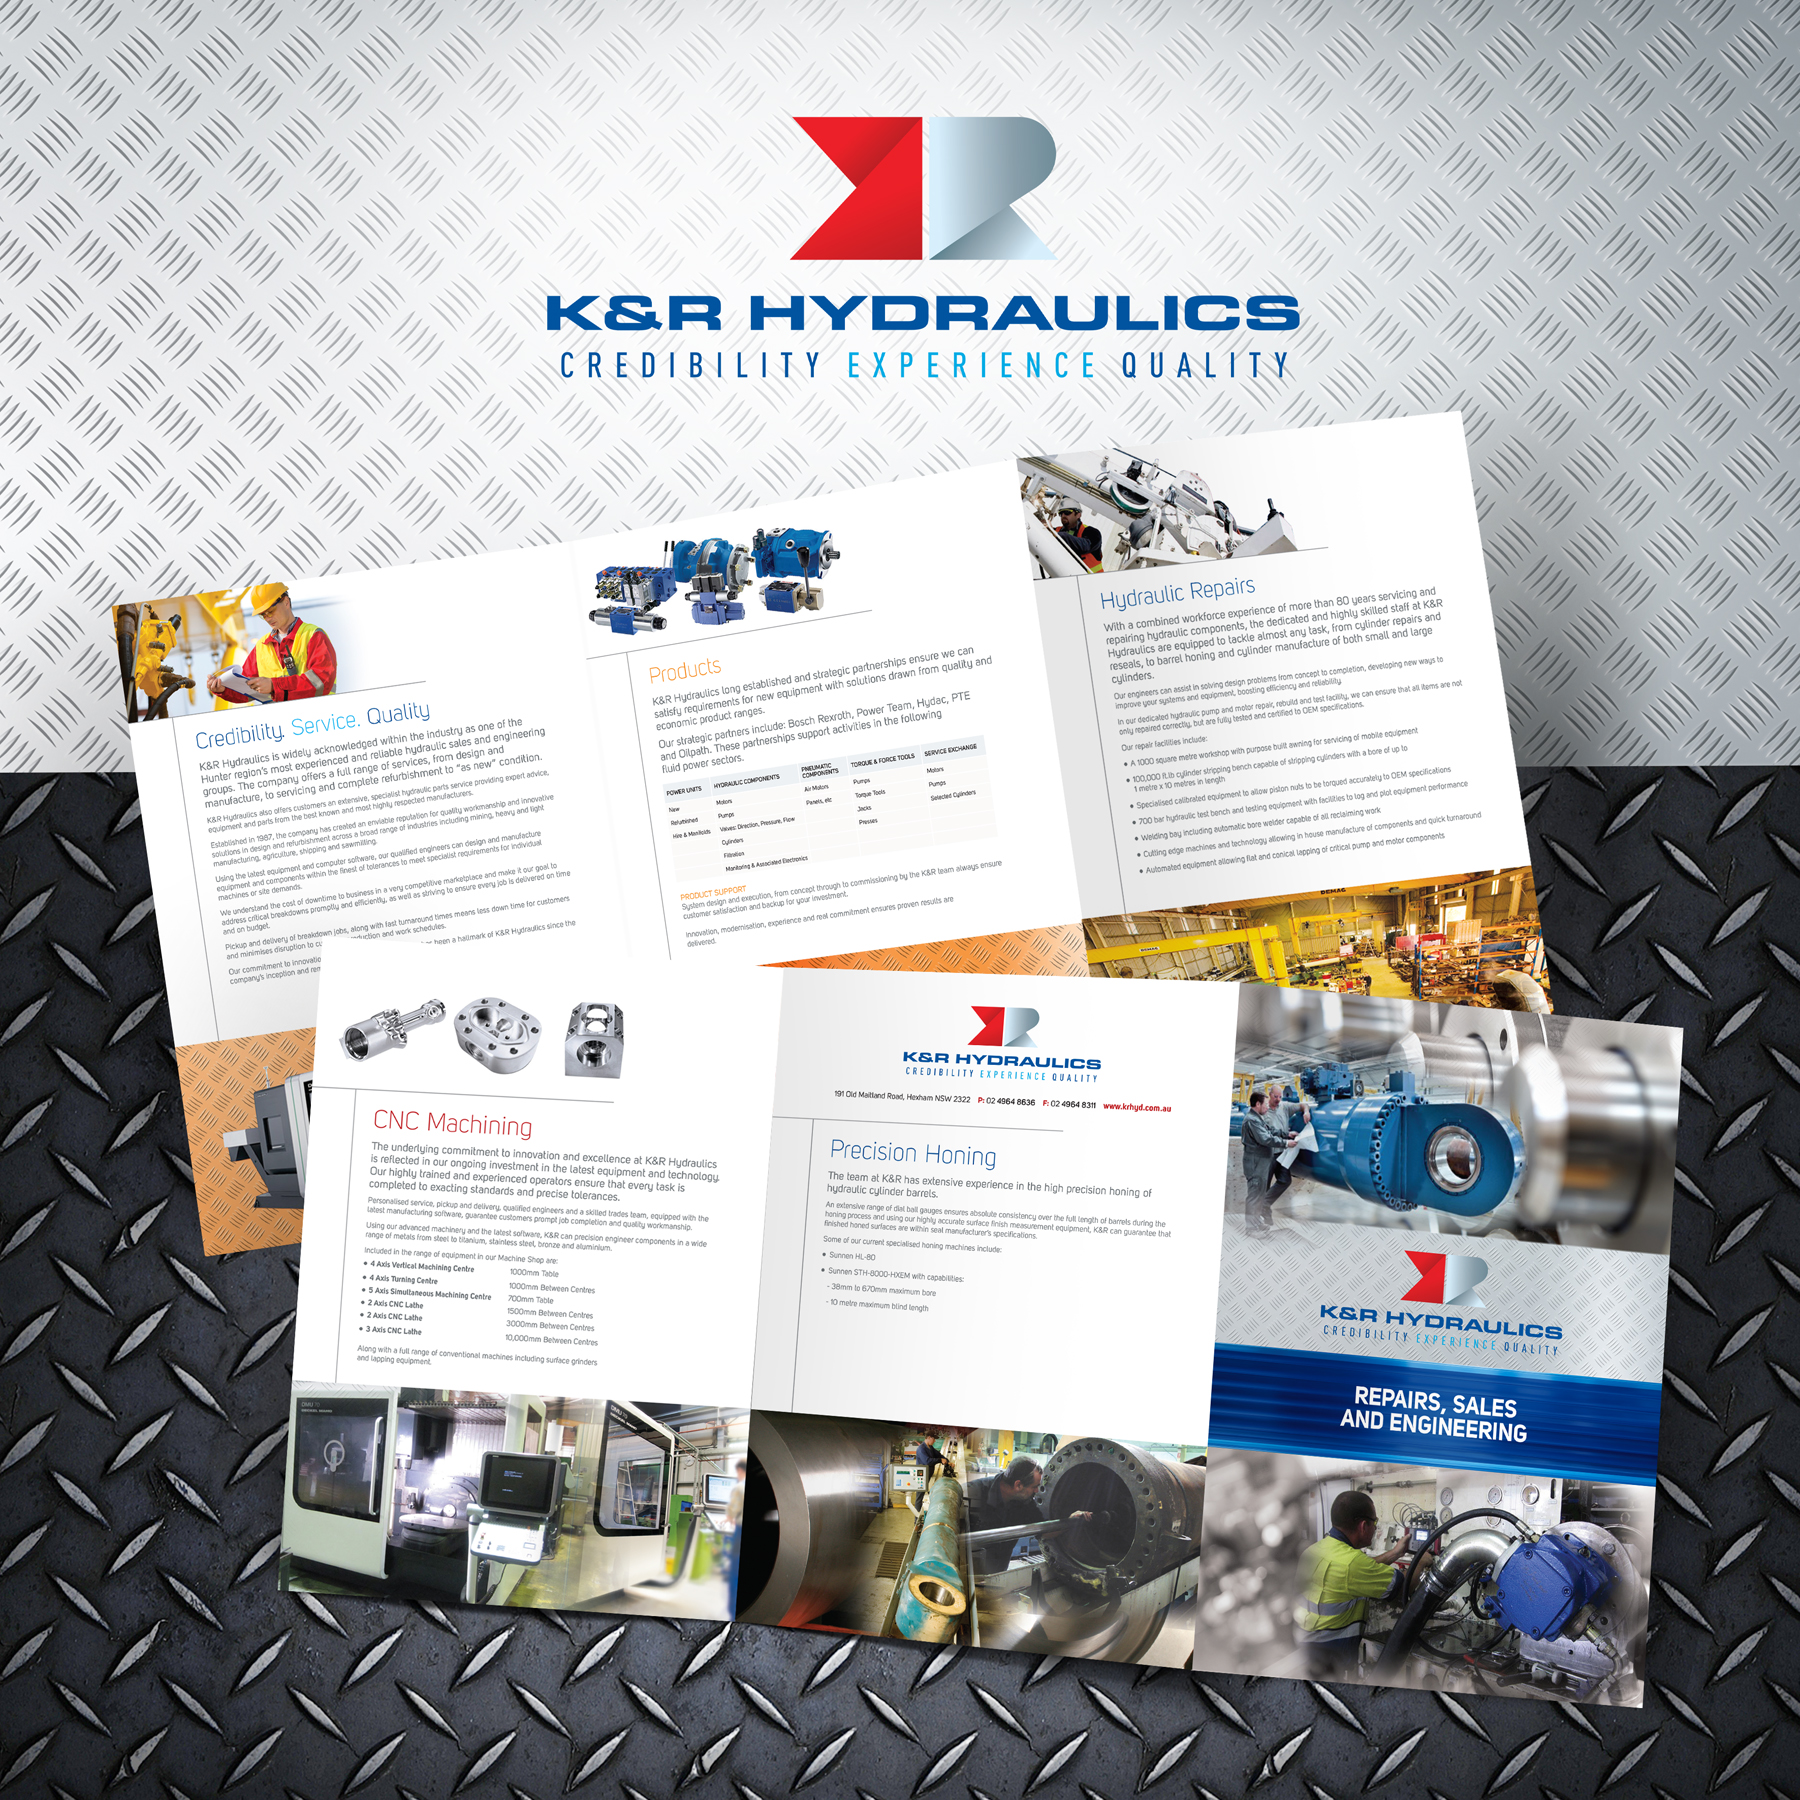 K&R Hydraulics brochure display banner on metal background